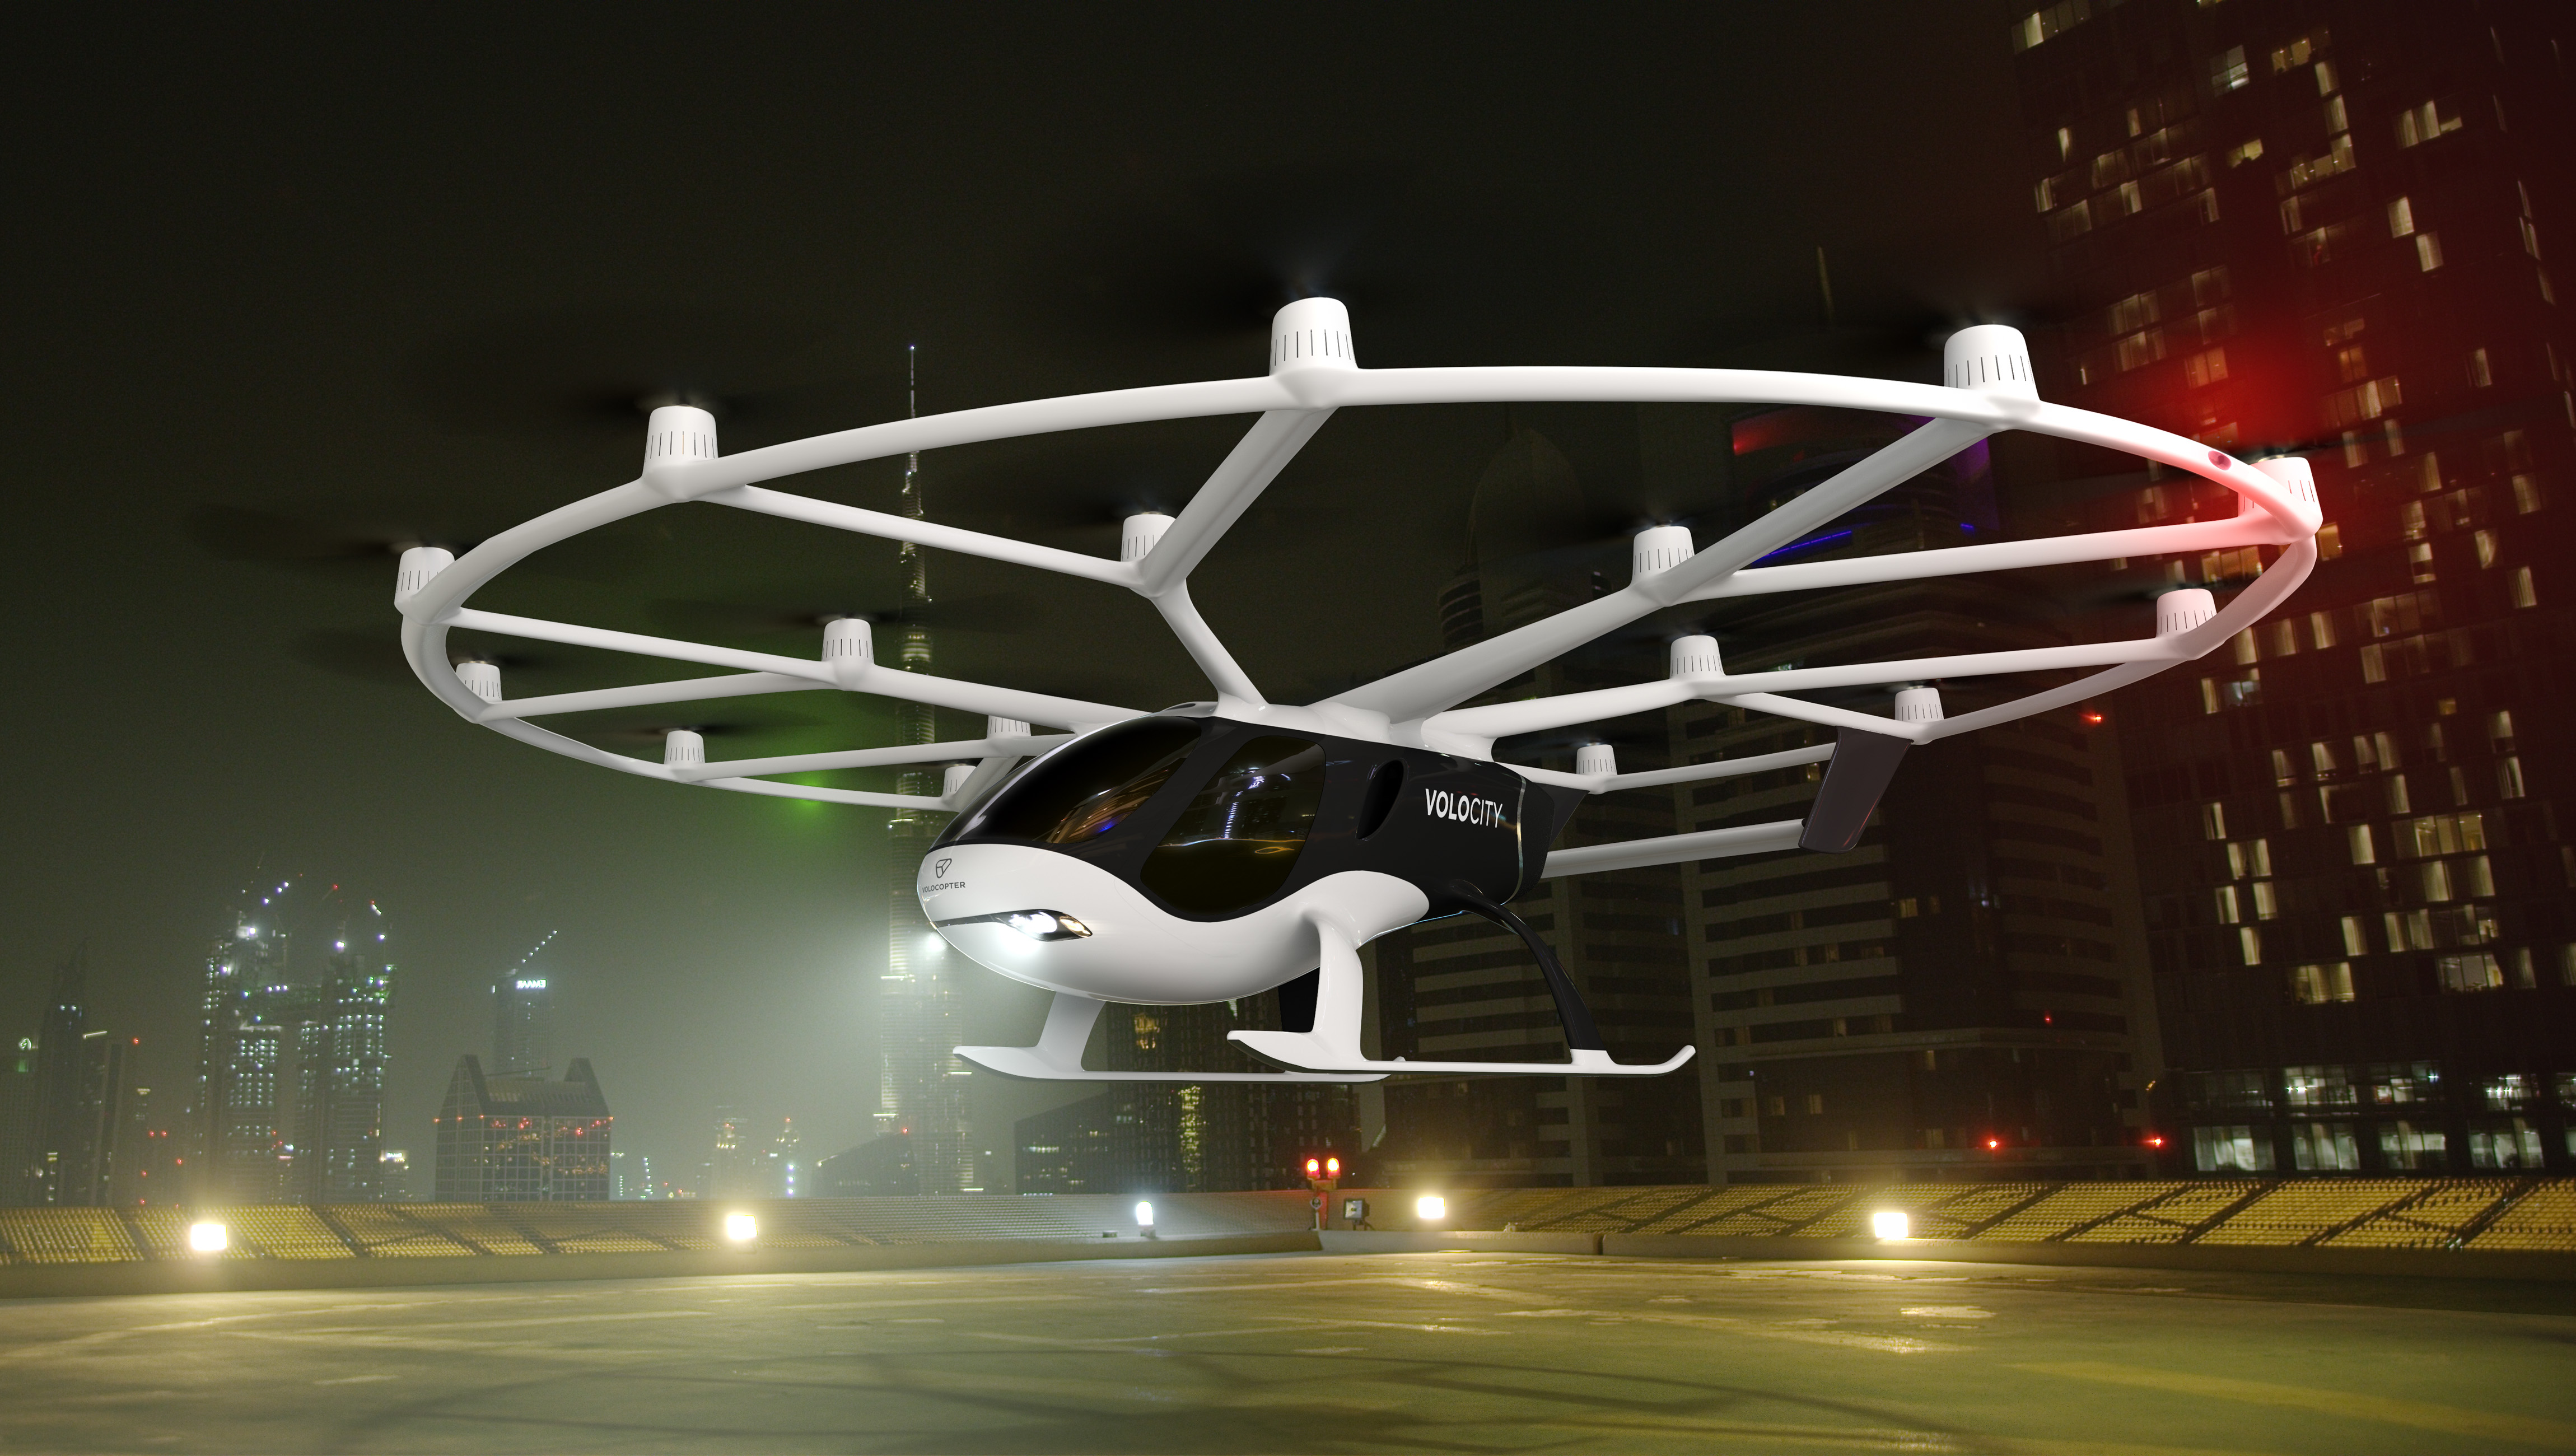 Volocopter introduces its most powerful flying taxi yet